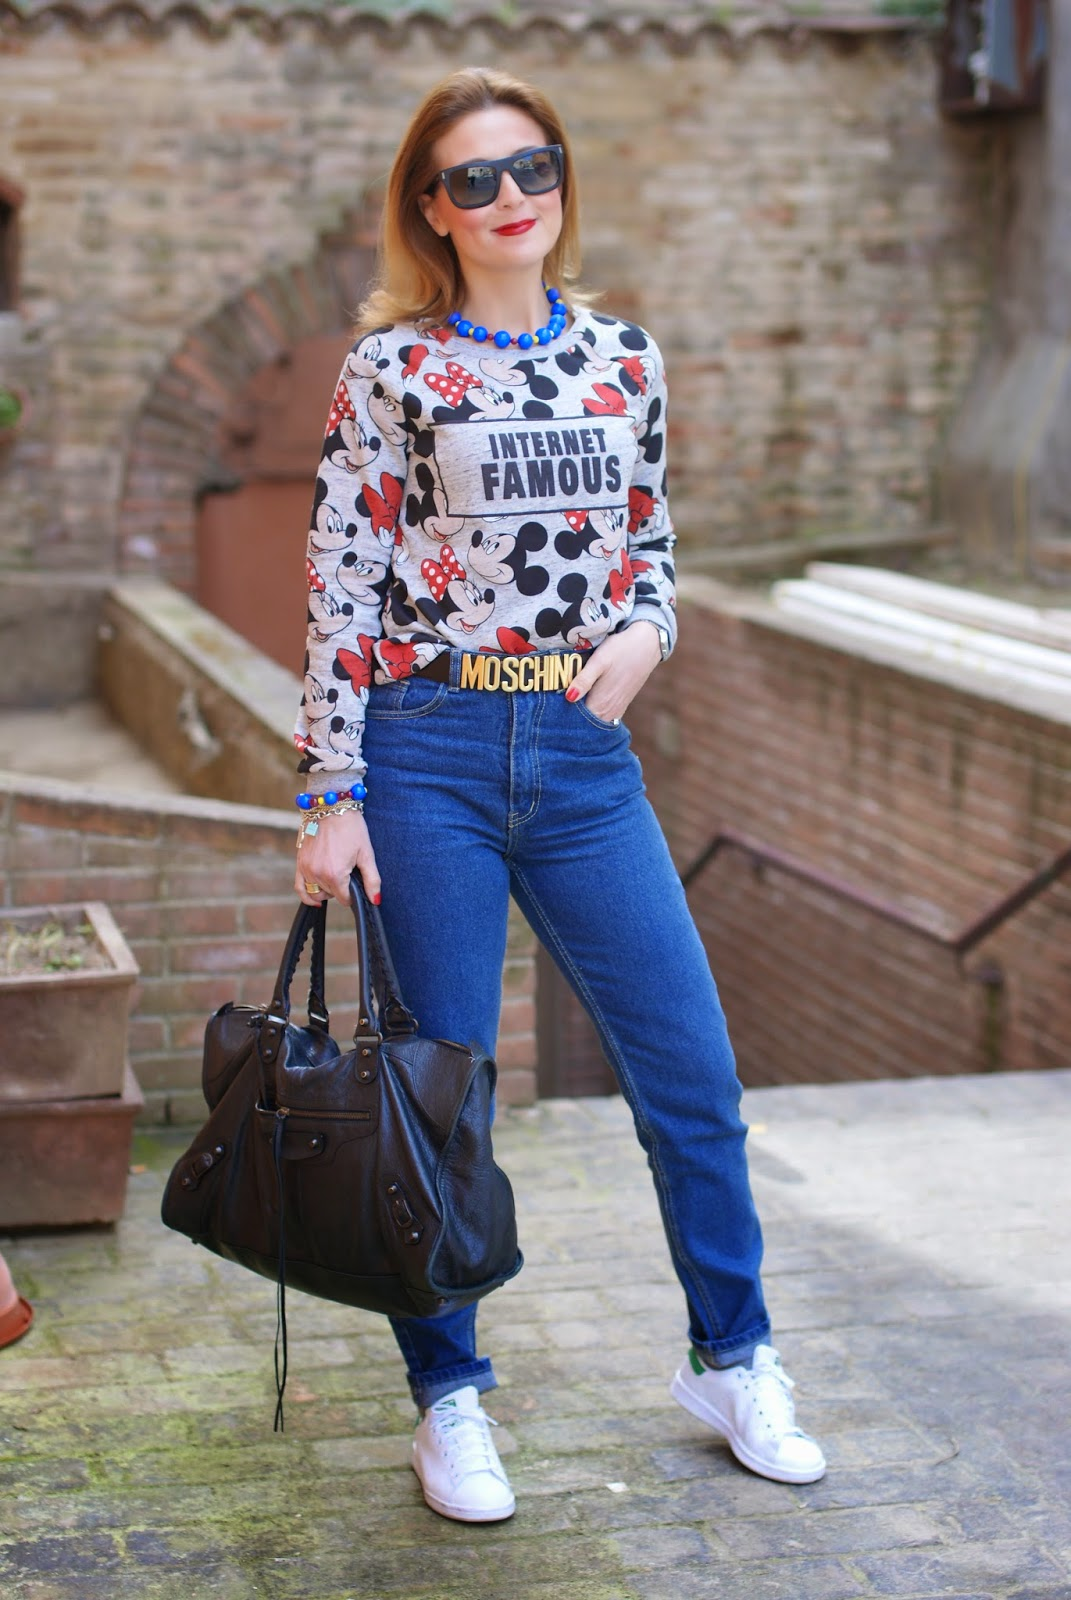 internet famous 80s inspired casual look  fashion and